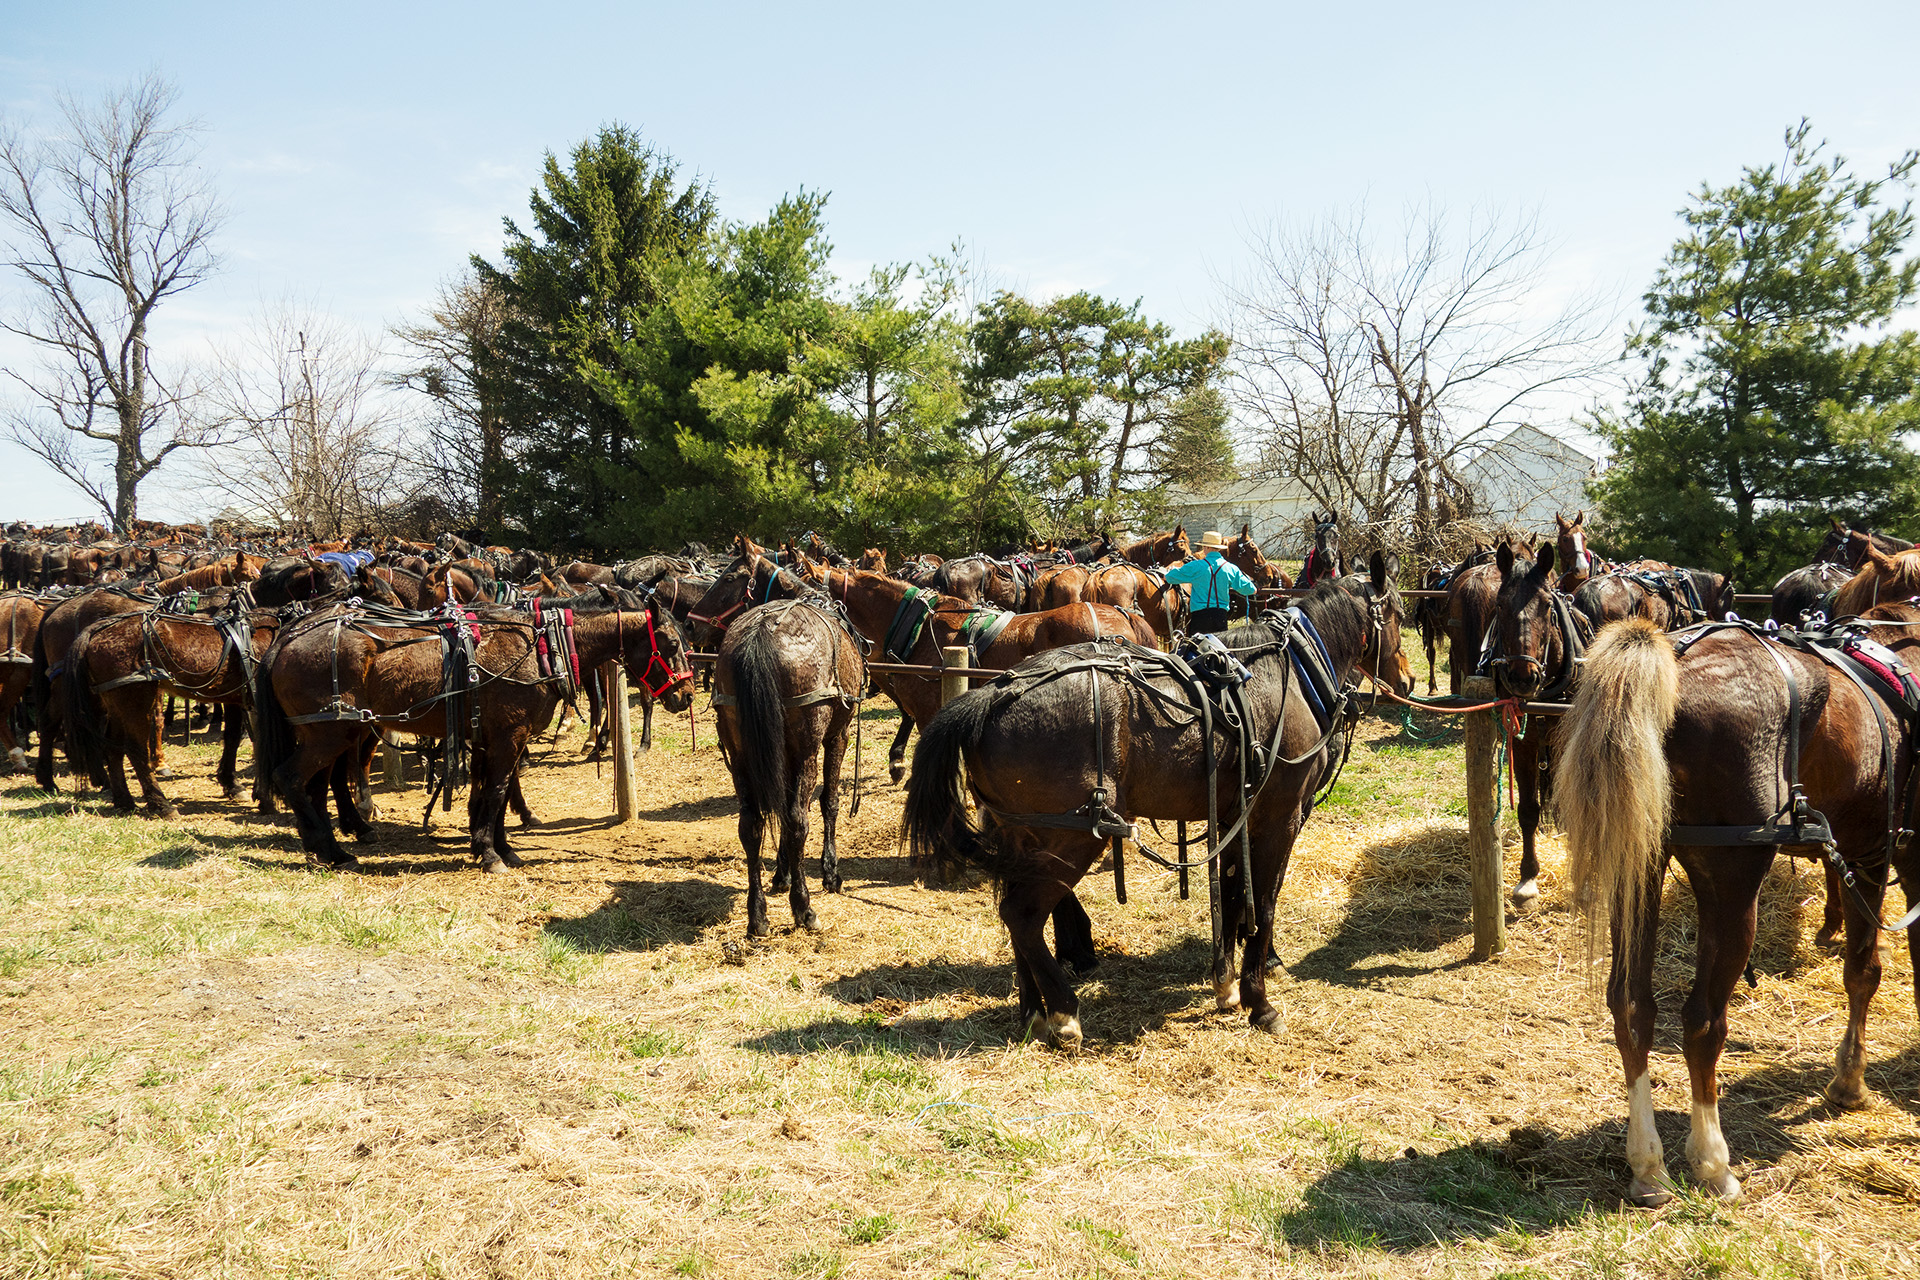 Horses tied up from Mud Sale attendees.